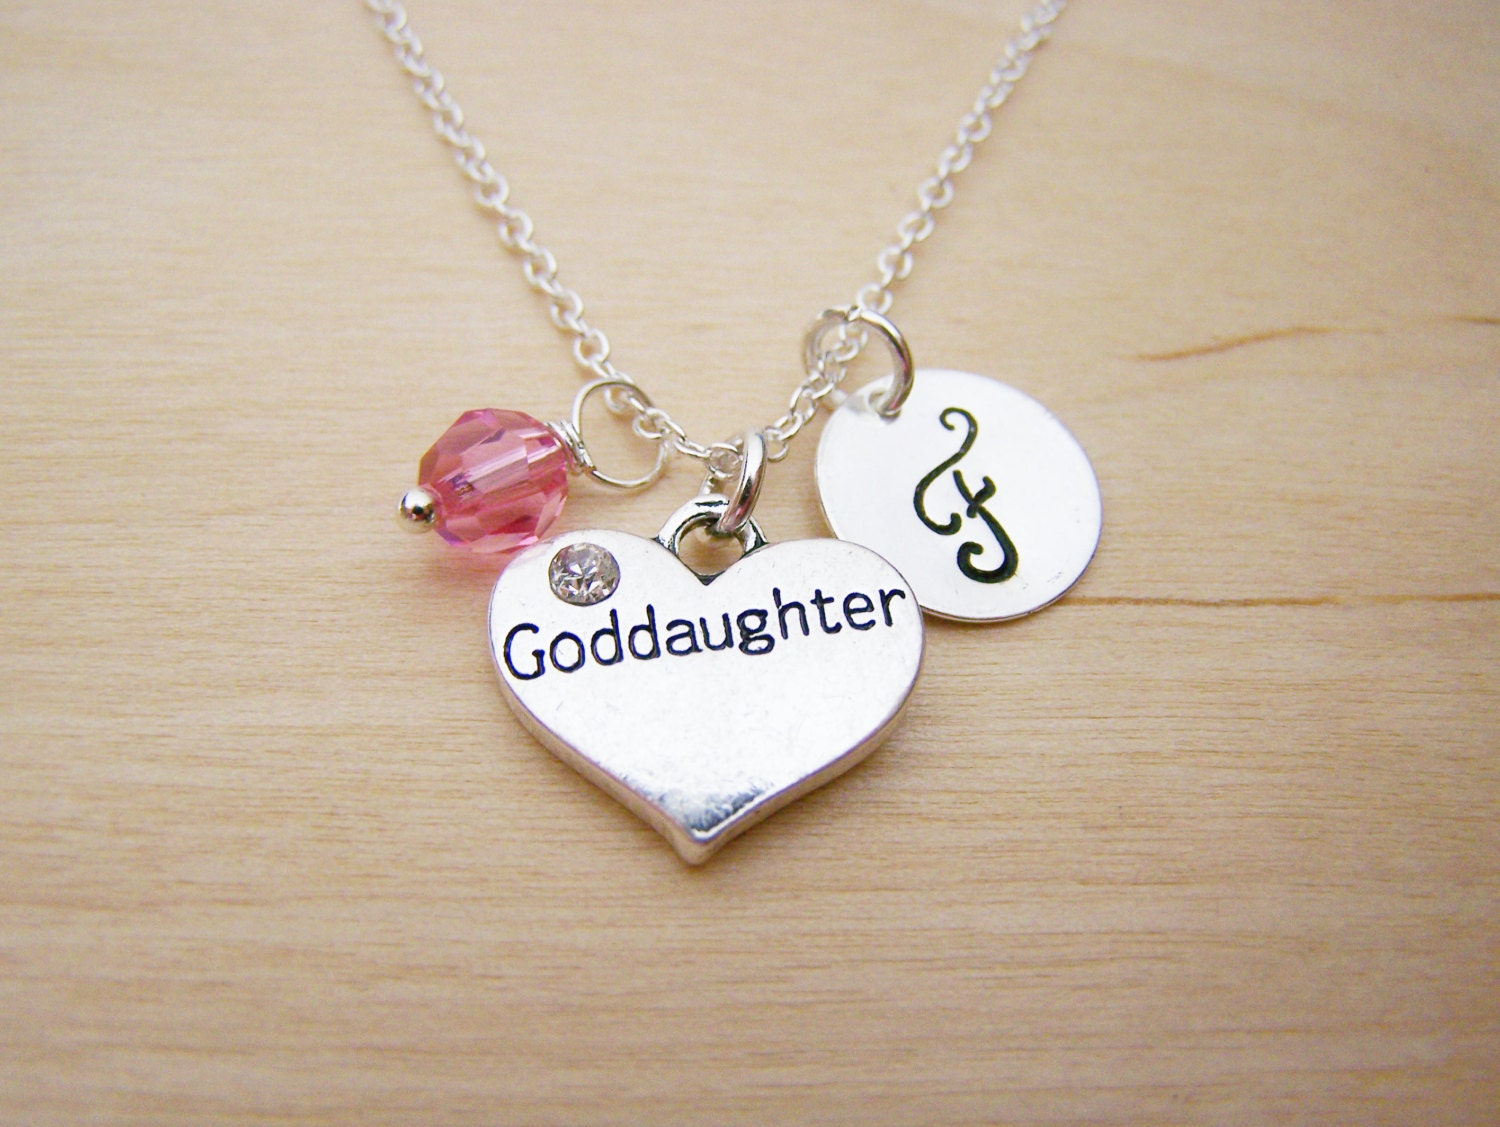 Gift For Goddaughter Birthstone Necklace Sterling By: Goddaughter Charm Necklace Swarovski Birthstone Initial